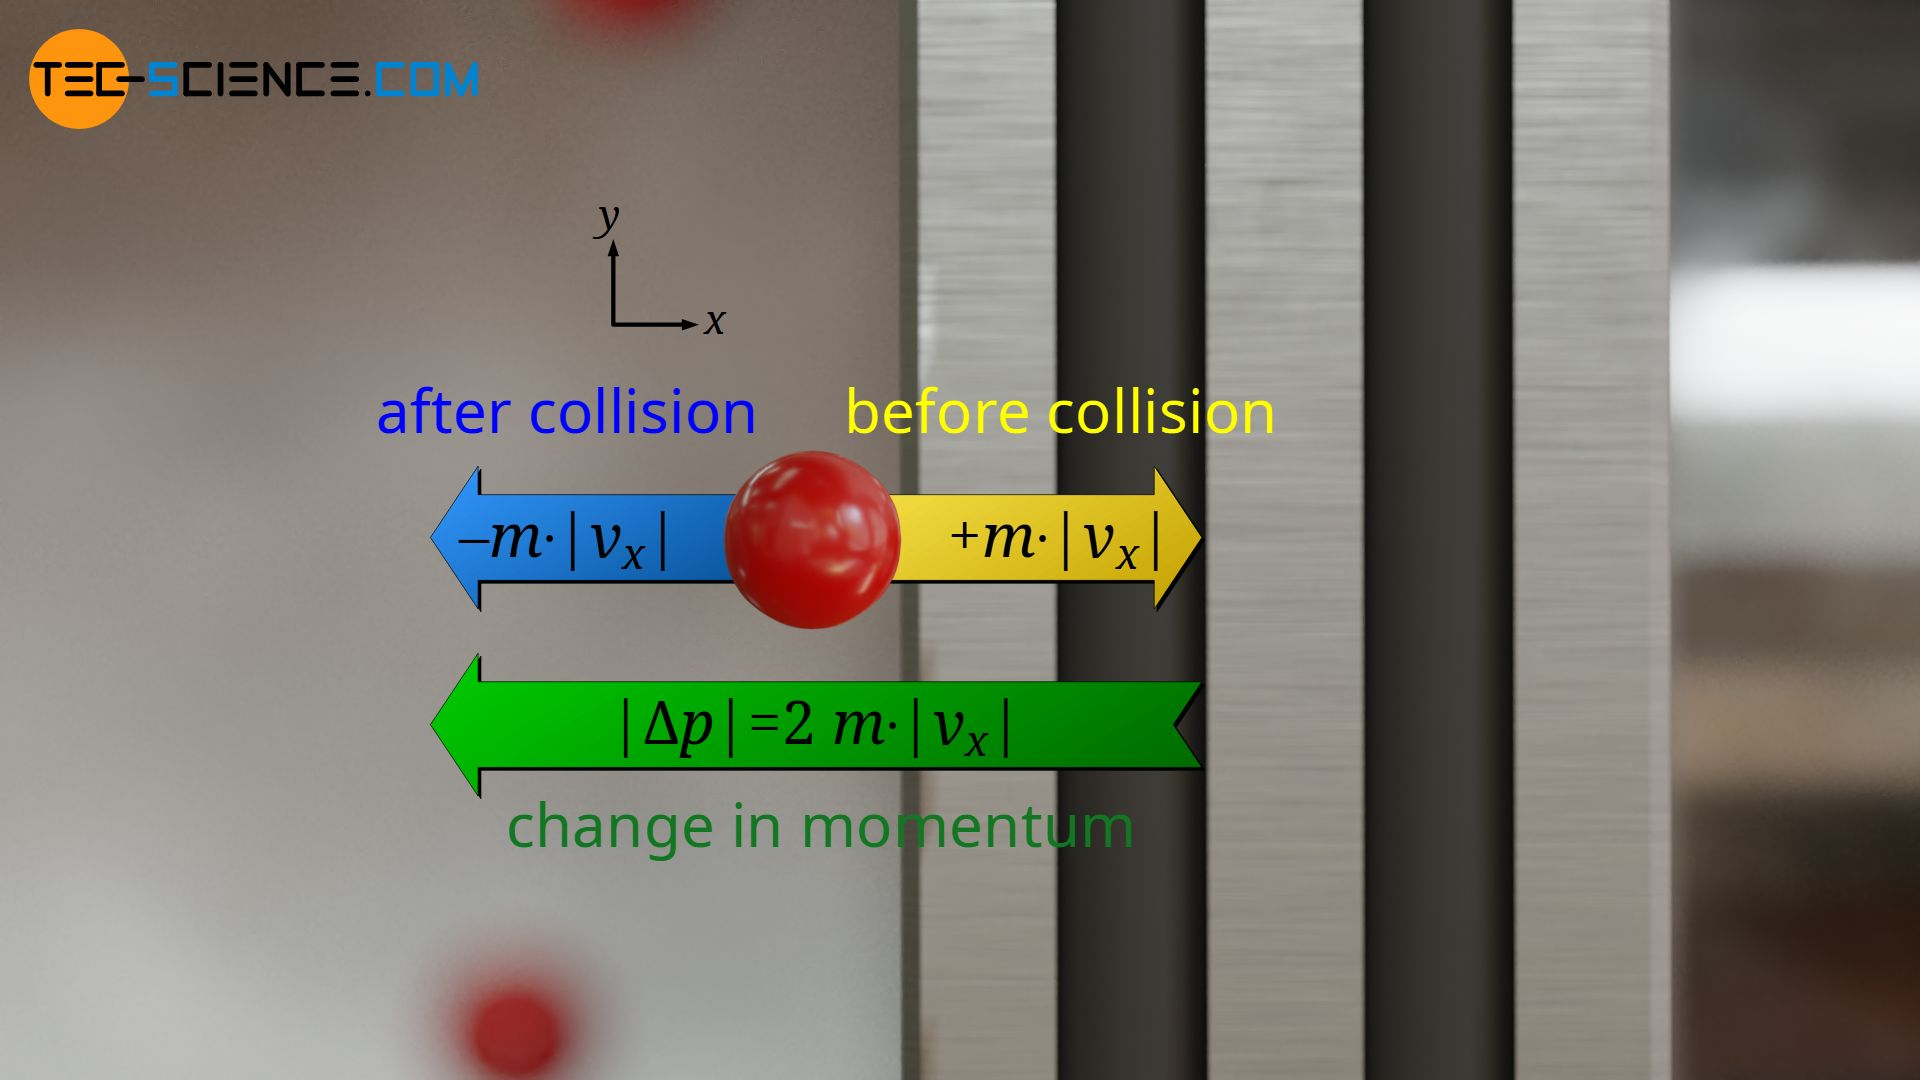 Change in momentum (impuls) during the collision with the piston surface